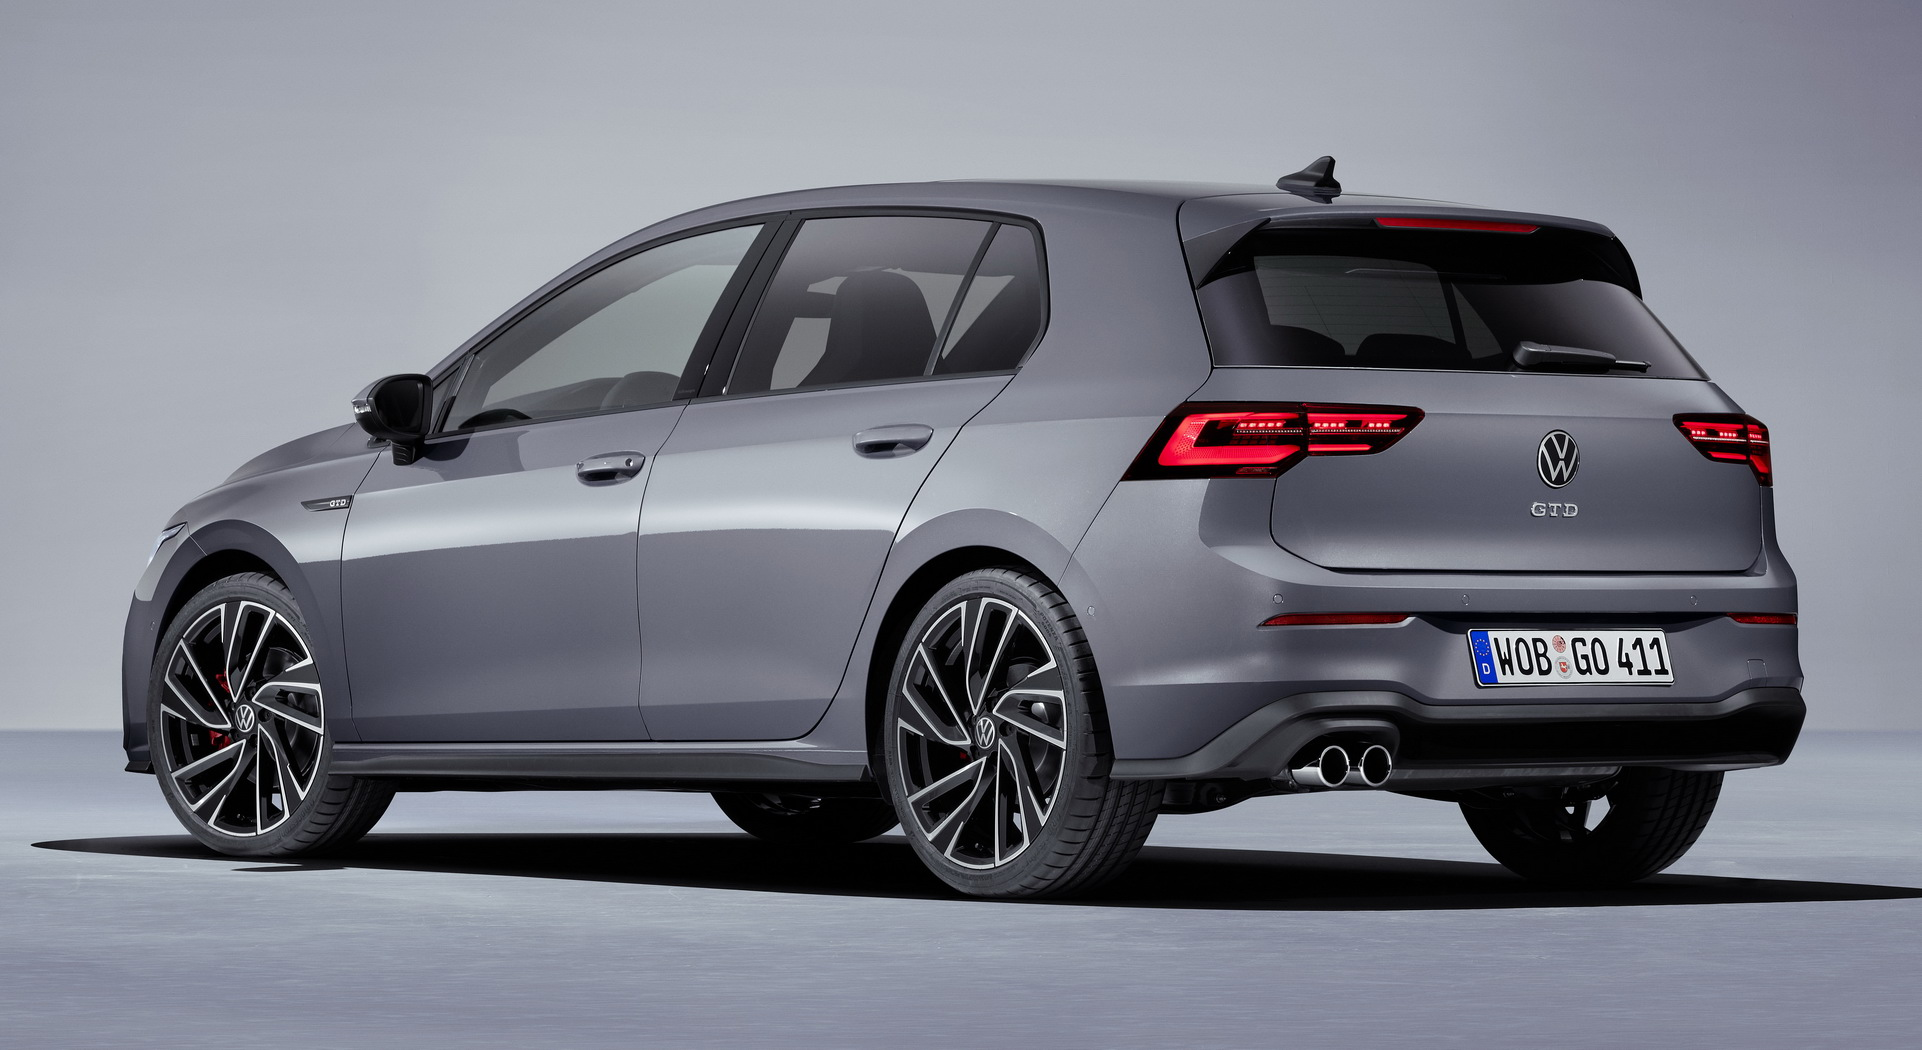 2021 Vw Golf Gti Mk8 Is Here With 242 Hp And So Are The Gte And Gtd Carscoops